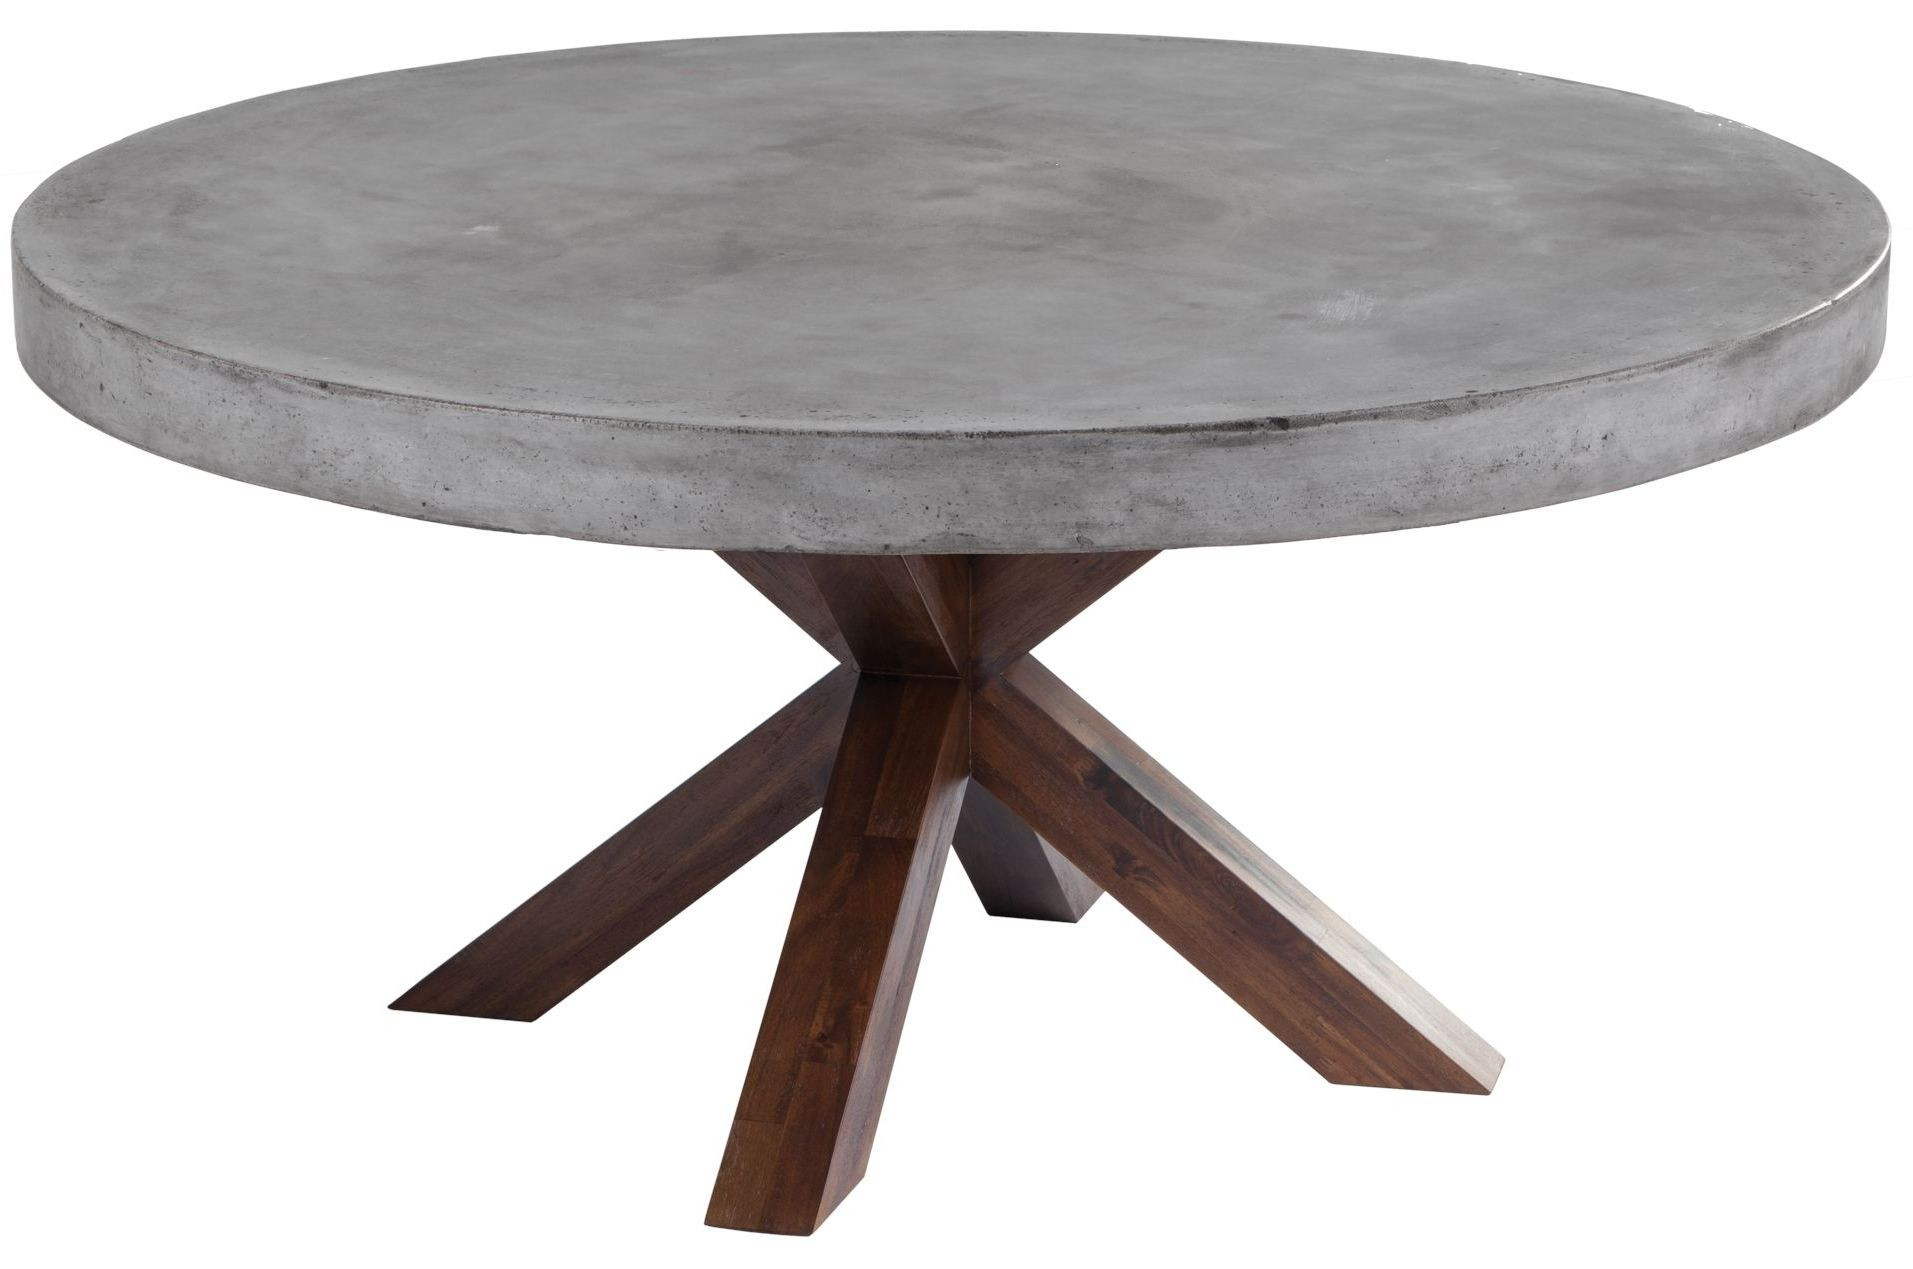 Warwick Round Dining Table from Sunpan Coleman Furniture : 100509warwickdiningtableround from colemanfurniture.com size 1913 x 1269 jpeg 184kB